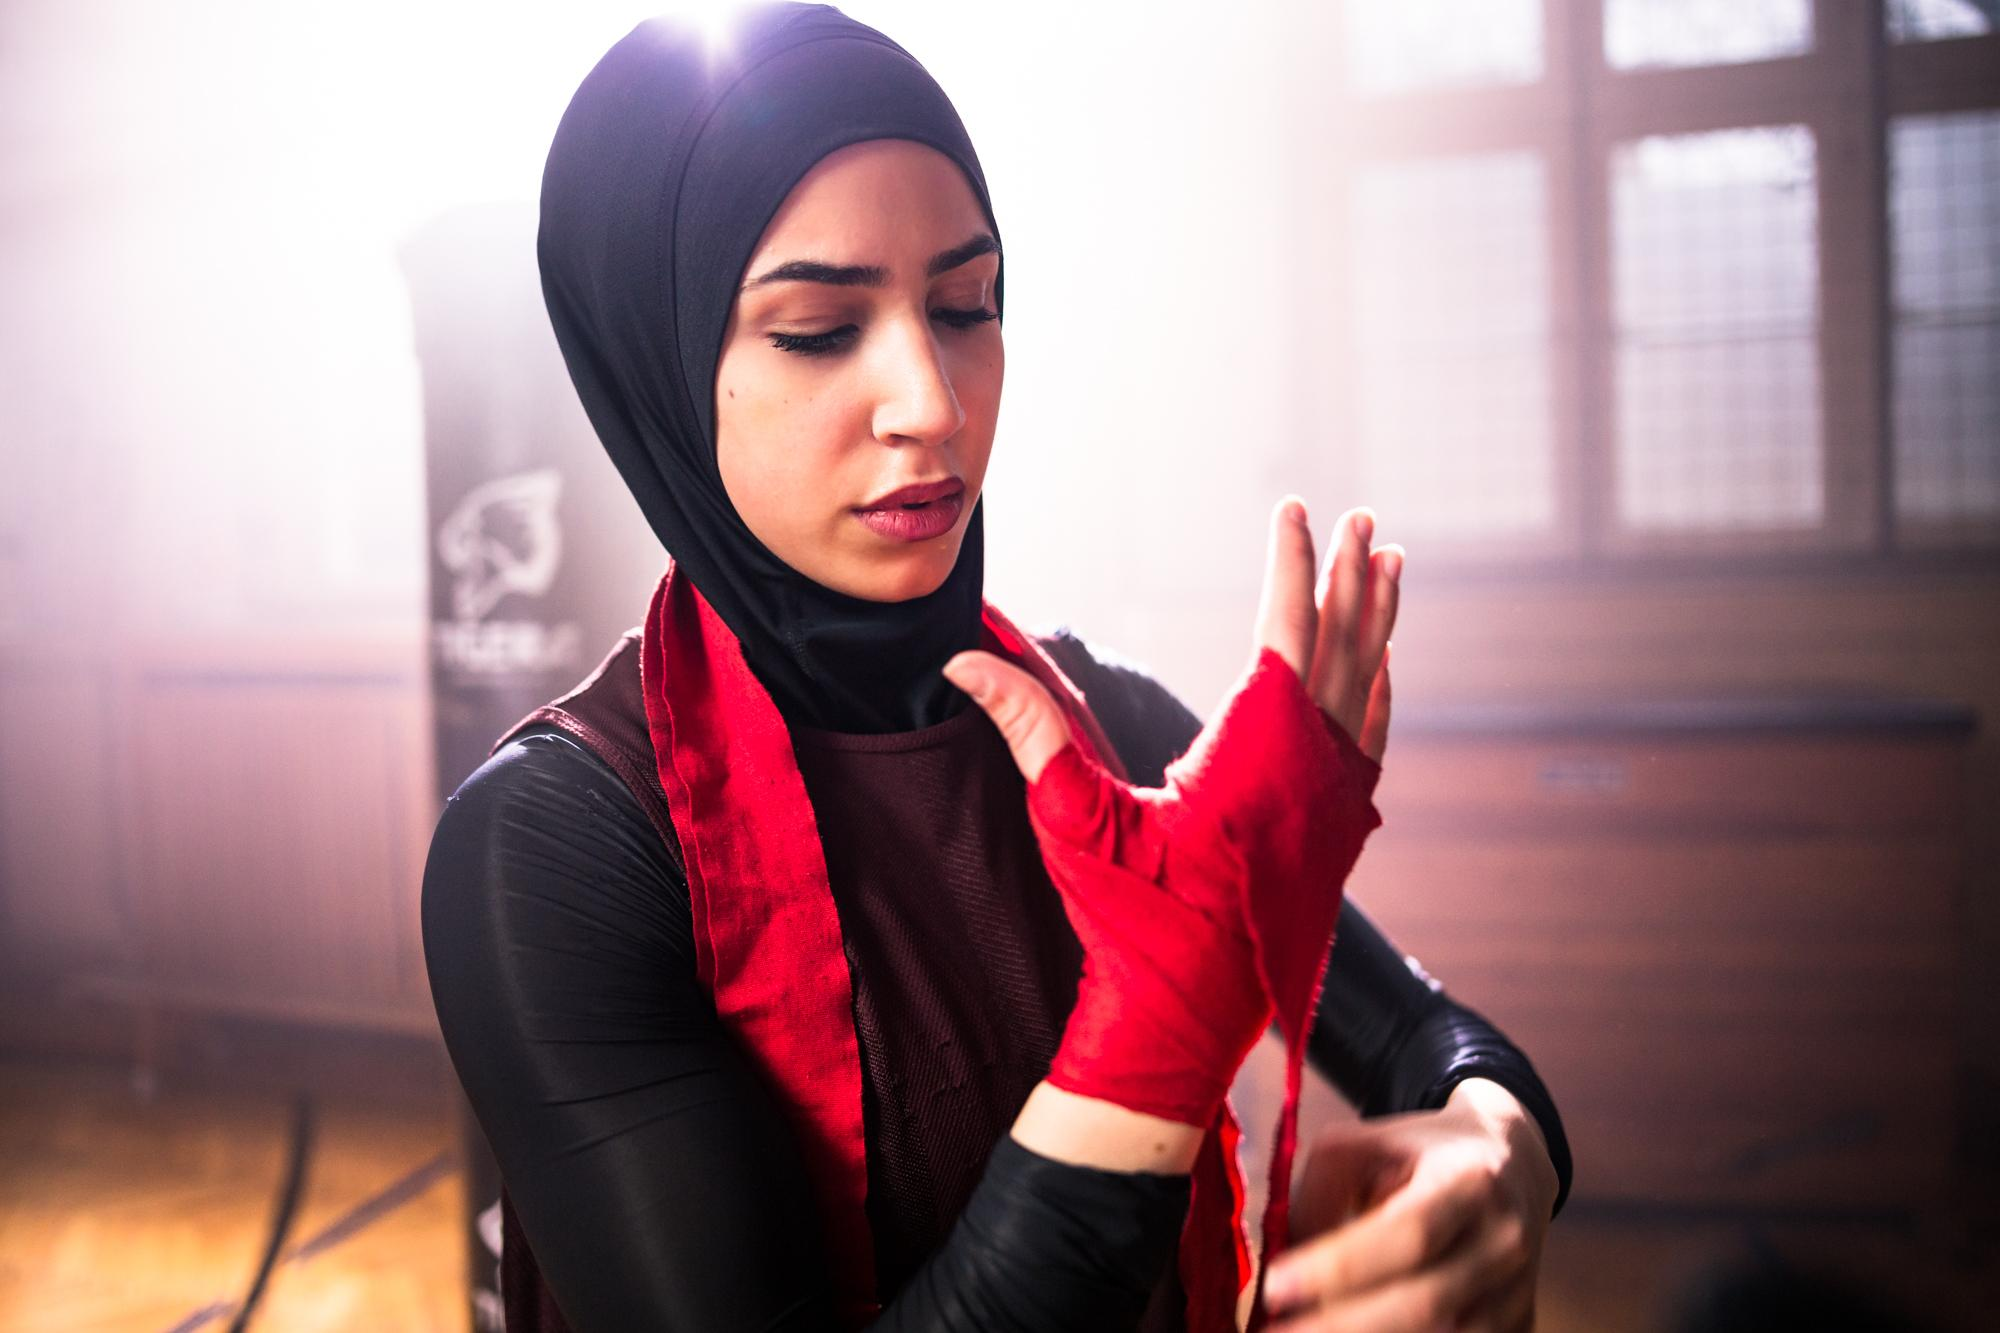 Zeina Nassar, 21, German box champion poses for a portrait inside her first boxing gym.